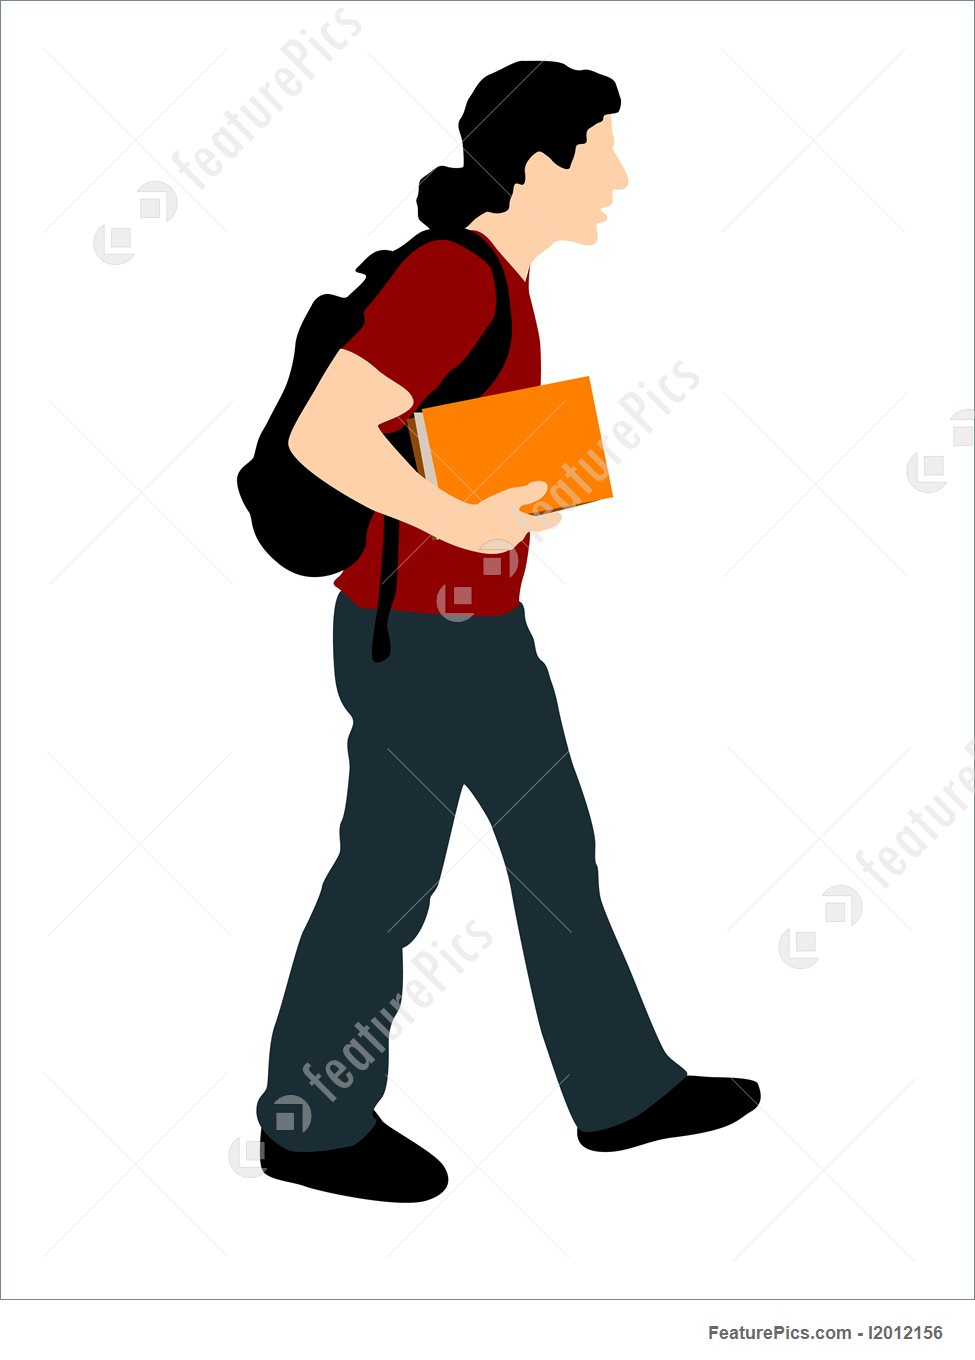 975x1360 Silhouettes And Outlines Young Student Walking With Books